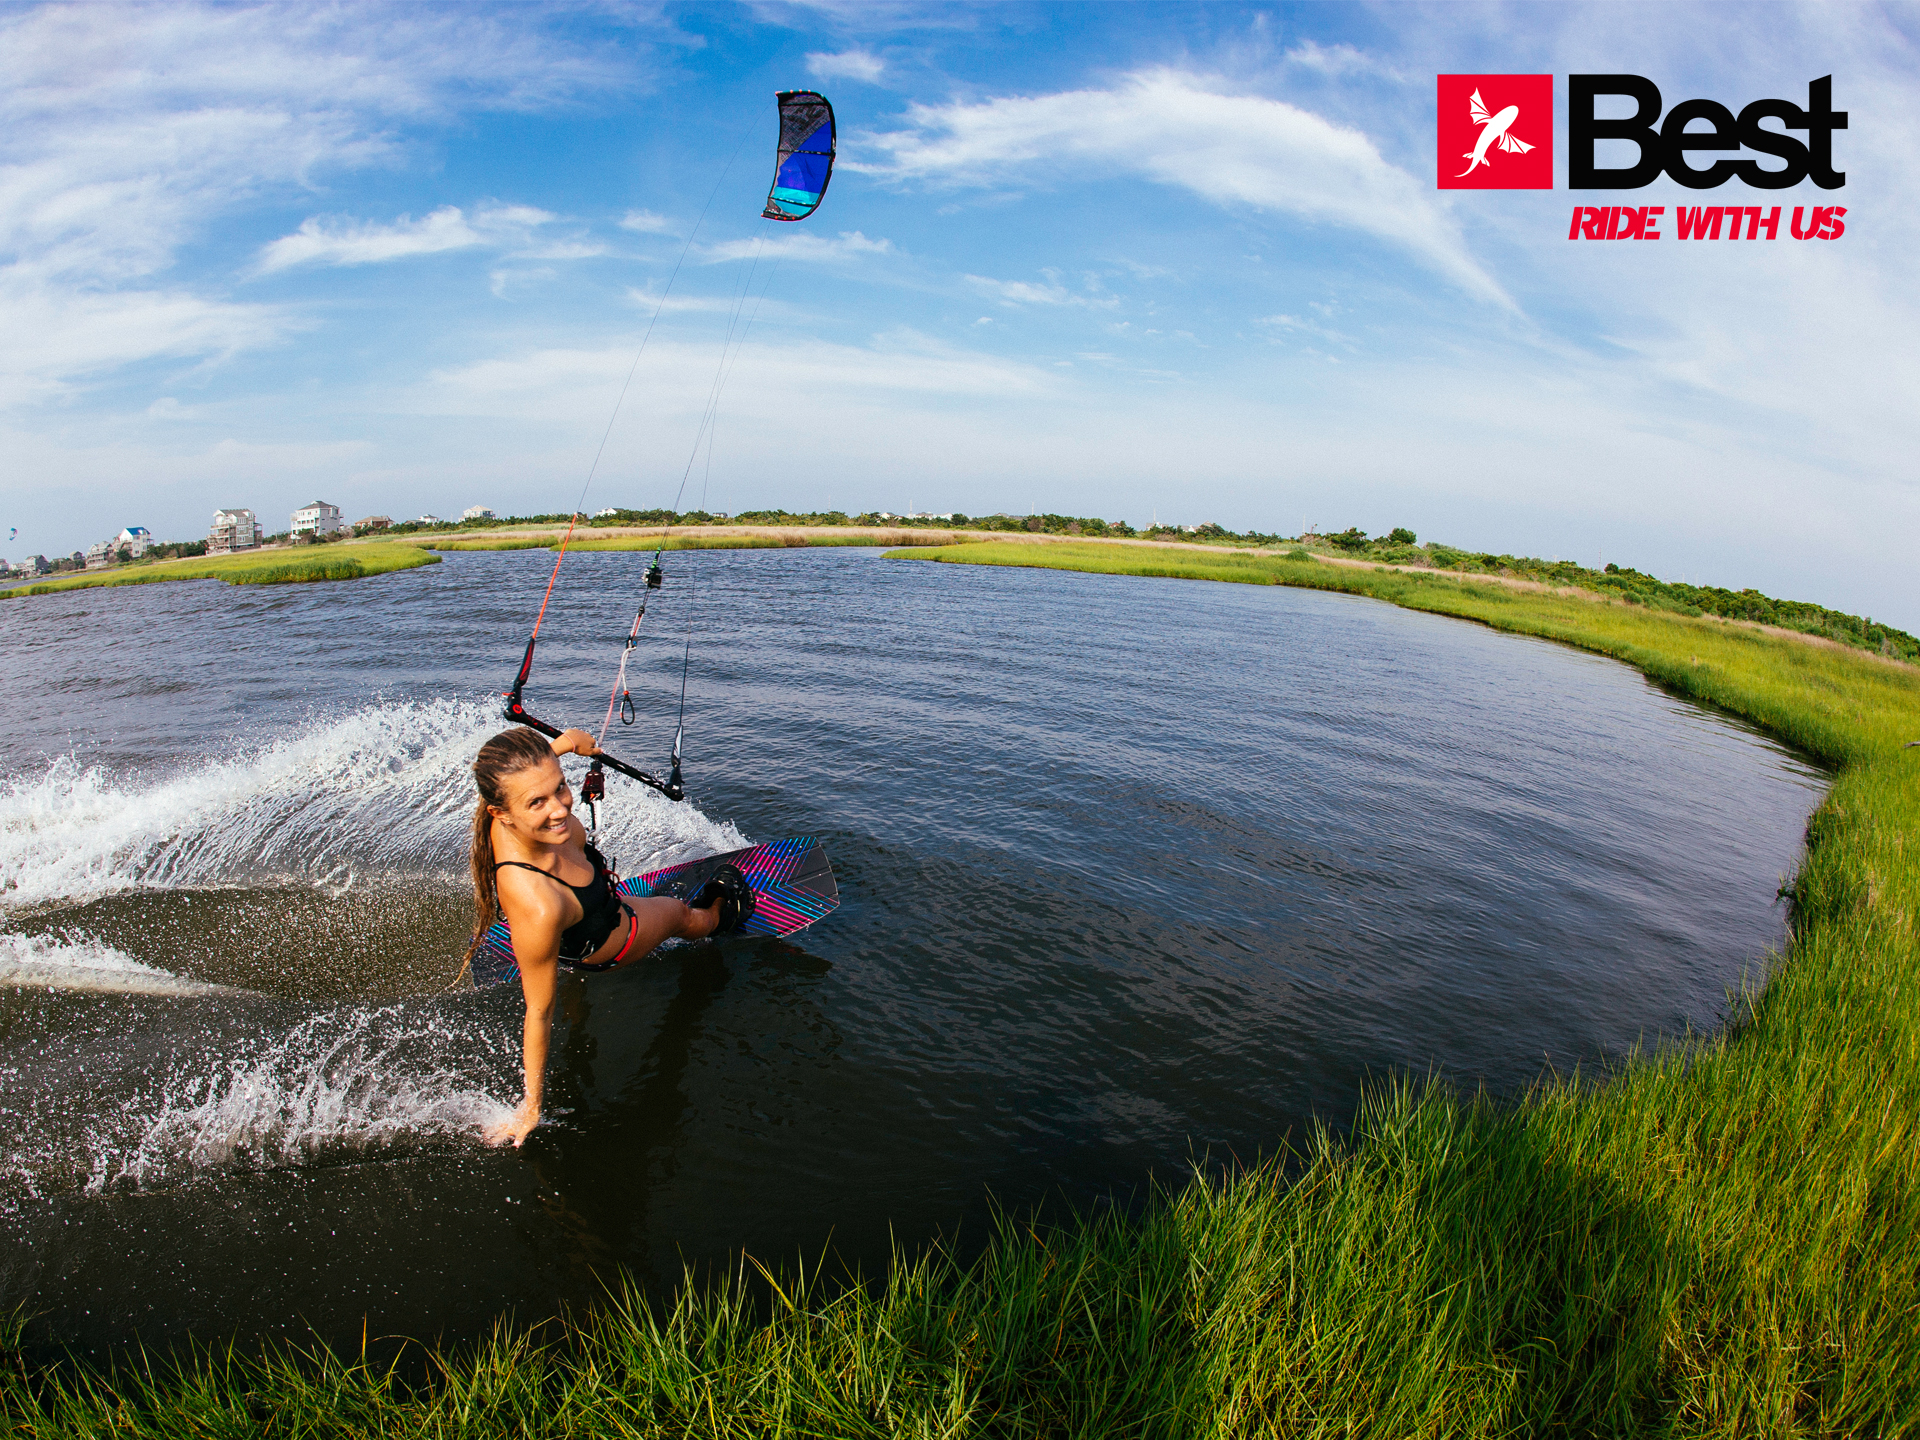 kitesurf wallpaper image - Cruising along the grass with the 2015 Best Kiteboarding TS kite - in resolution: Standard 4:3 1920 X 1440